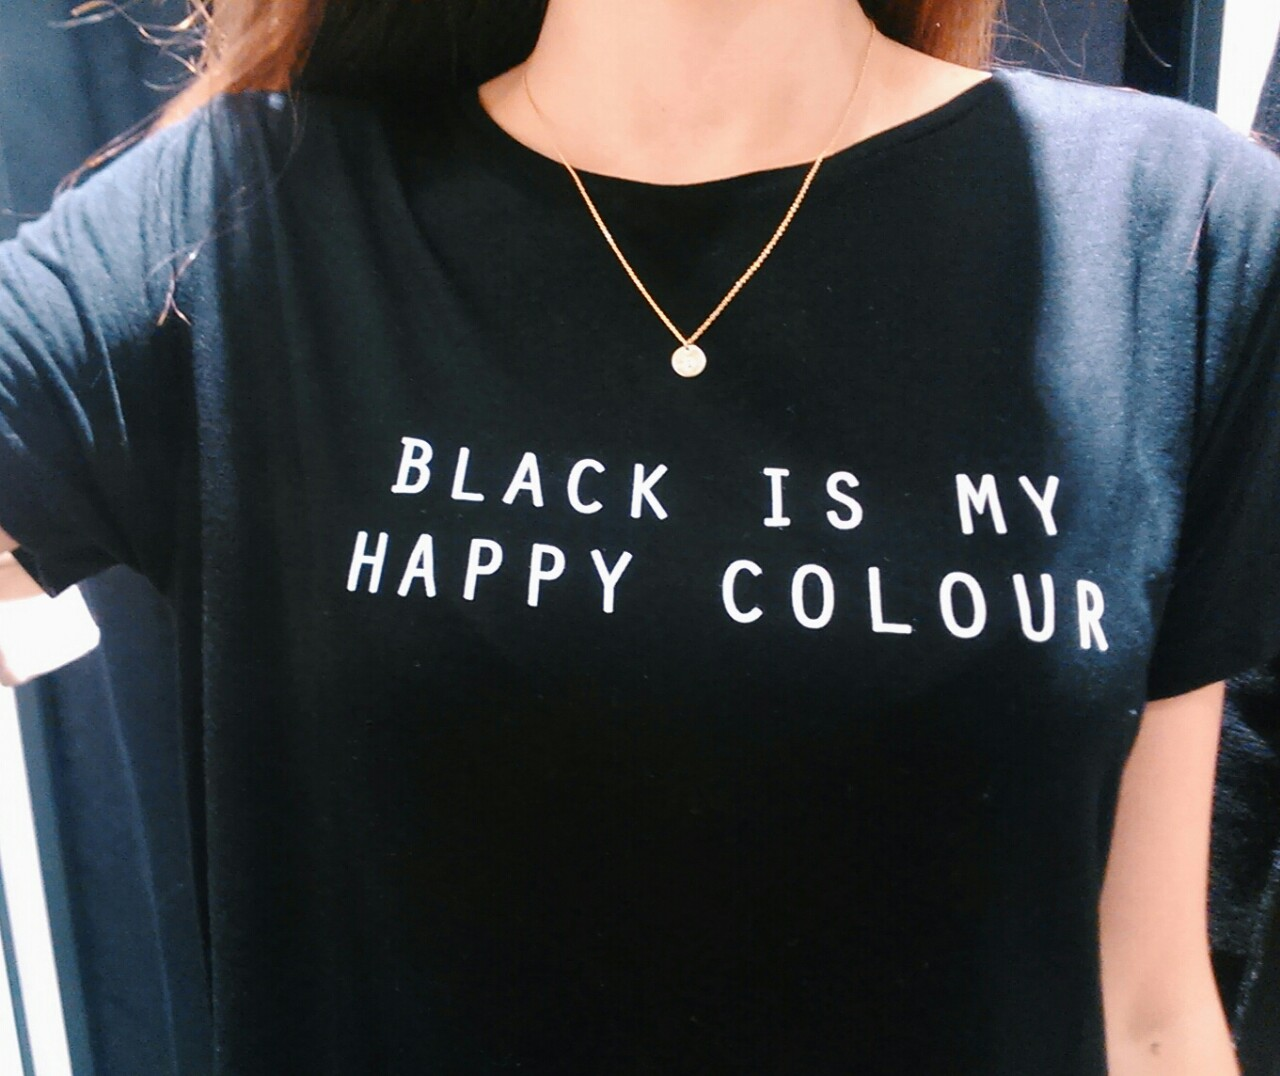 T shirt black is my happy color - T Shirt Black Is My Happy Color 44